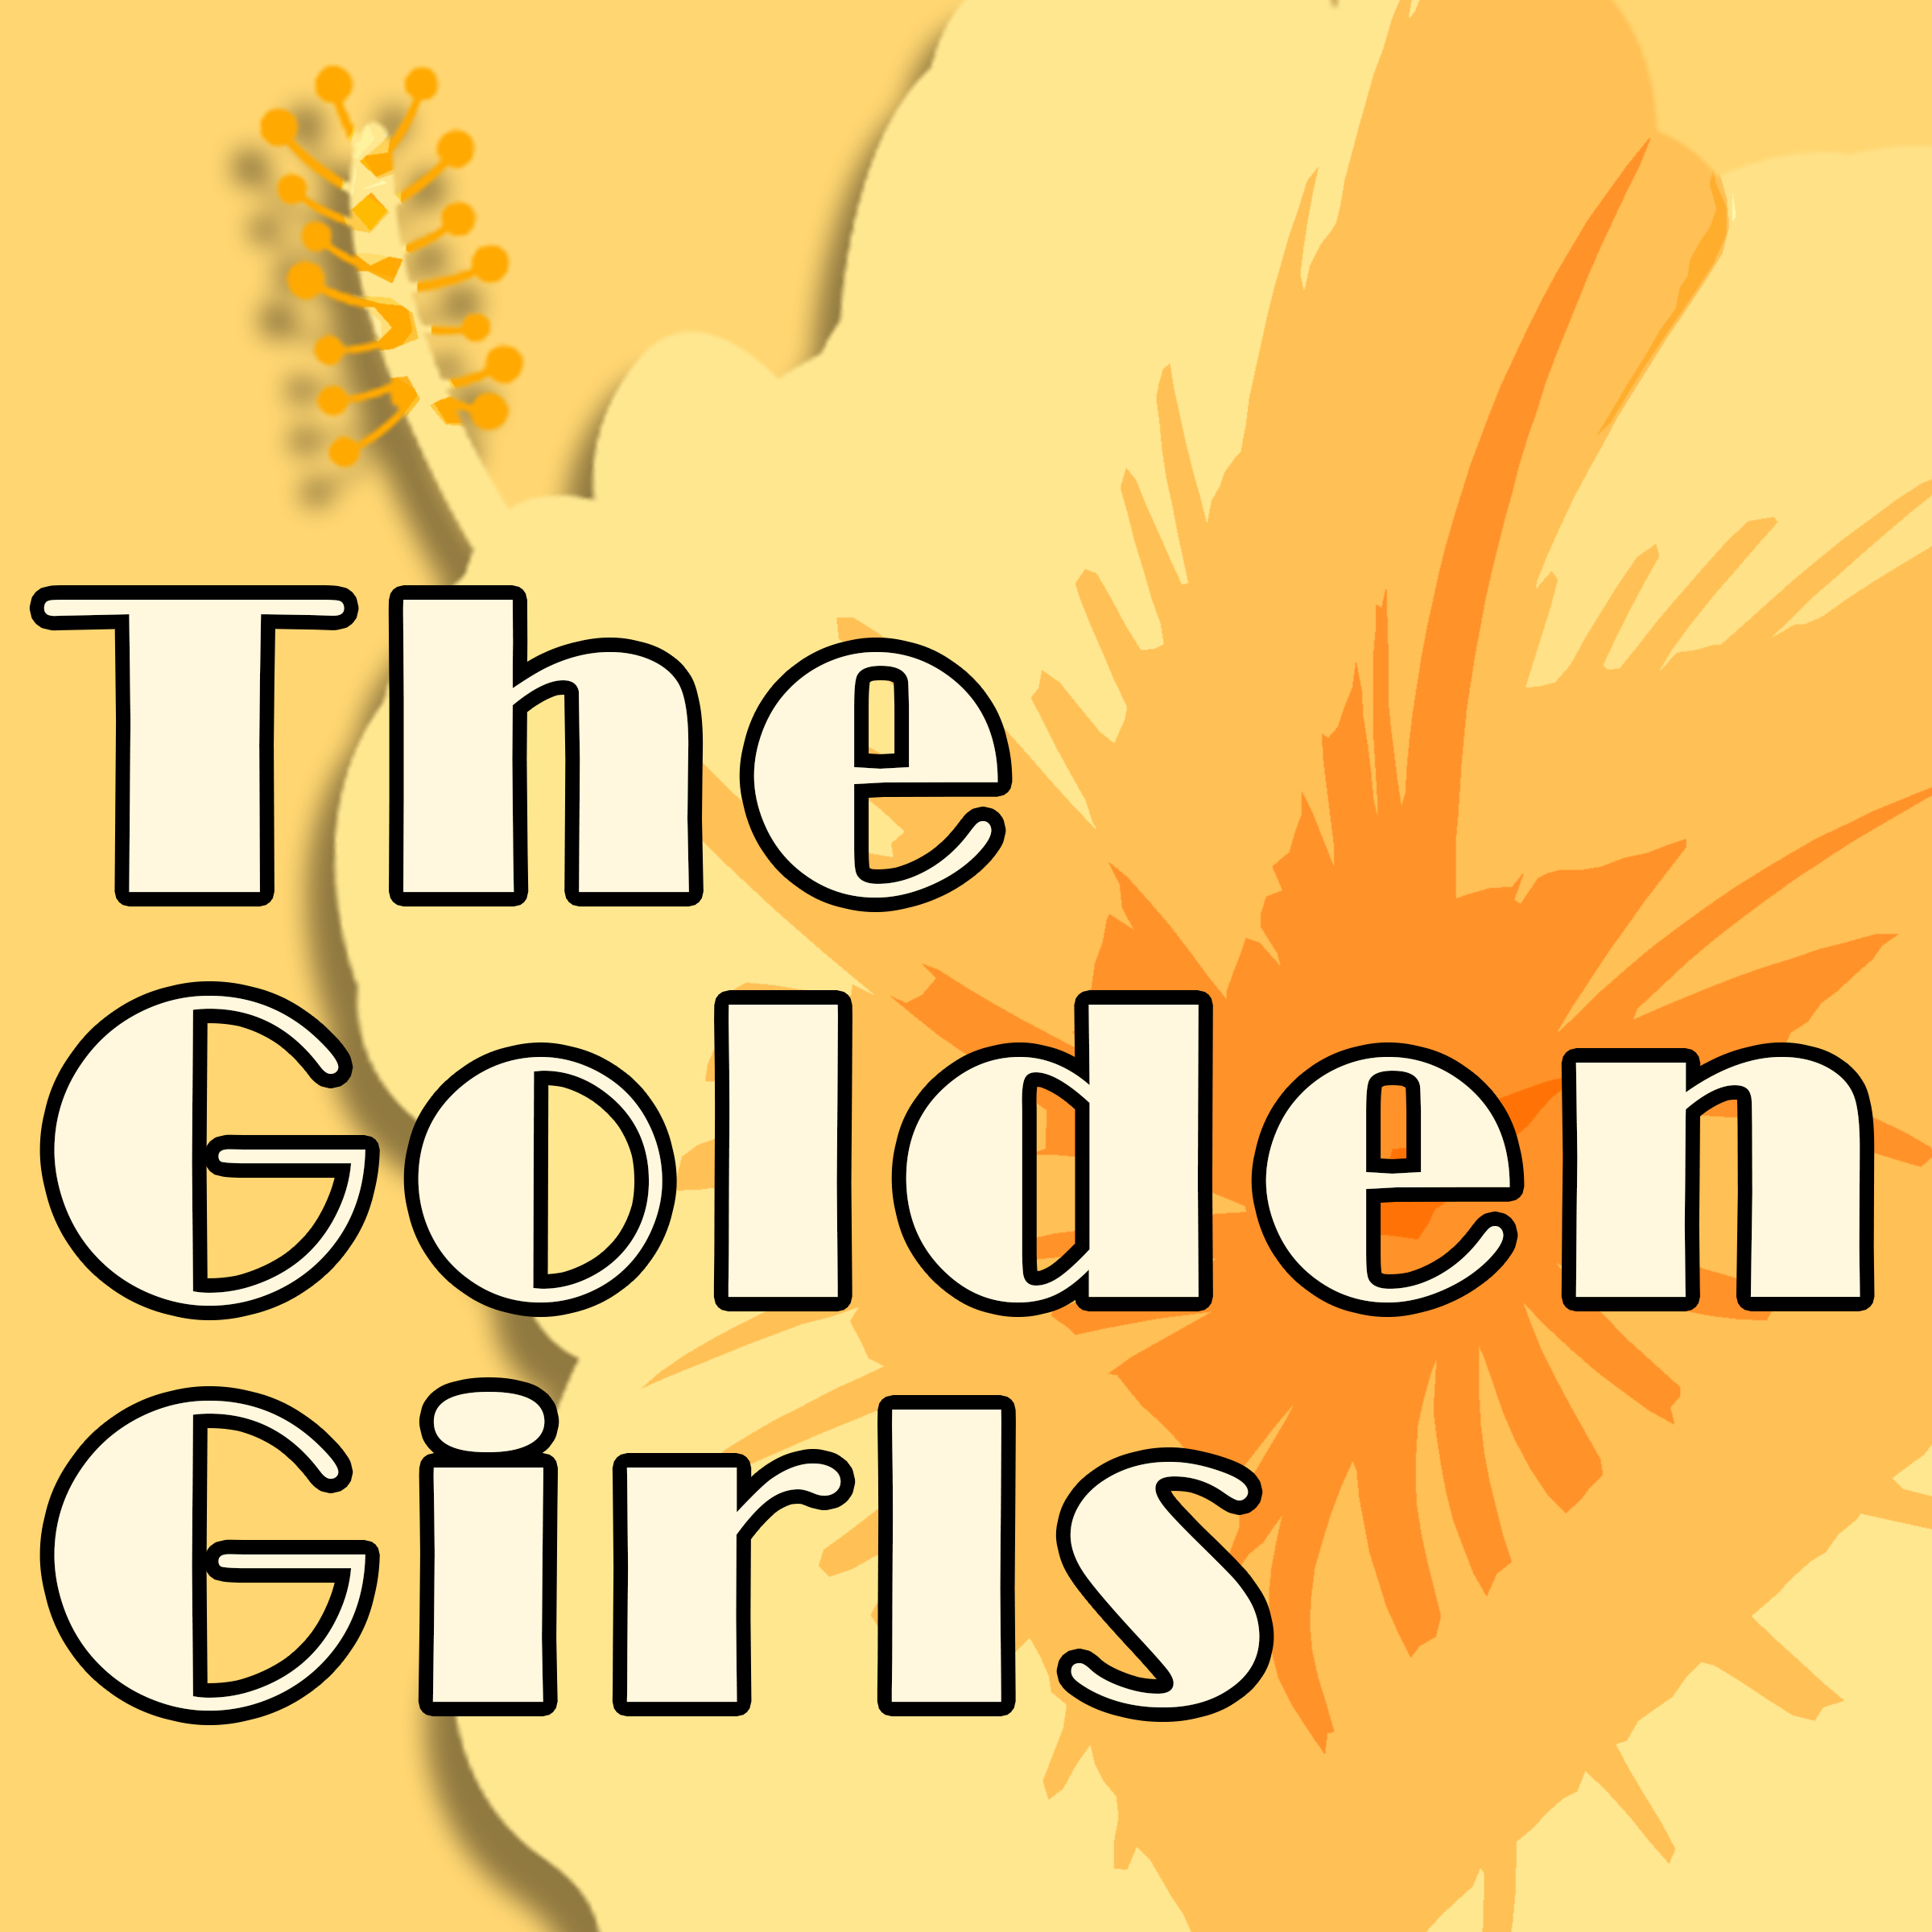 Feb 8-March 31 - THE GOLDEN GIRLSThank you for being a friend! Due to the overwhelming success of our productions and audience requests, the show was renewed for a fourth season with the antics of those four mature women living in Miami experiencing the joys and angst of their golden years. With Monte Wheeler, Kyle Vespestad, Scott Noah and Tom Frye and guest appearance by Christine Tasheff, see 3 new episodes, laughing and learning until your stomach aches. RATED PG